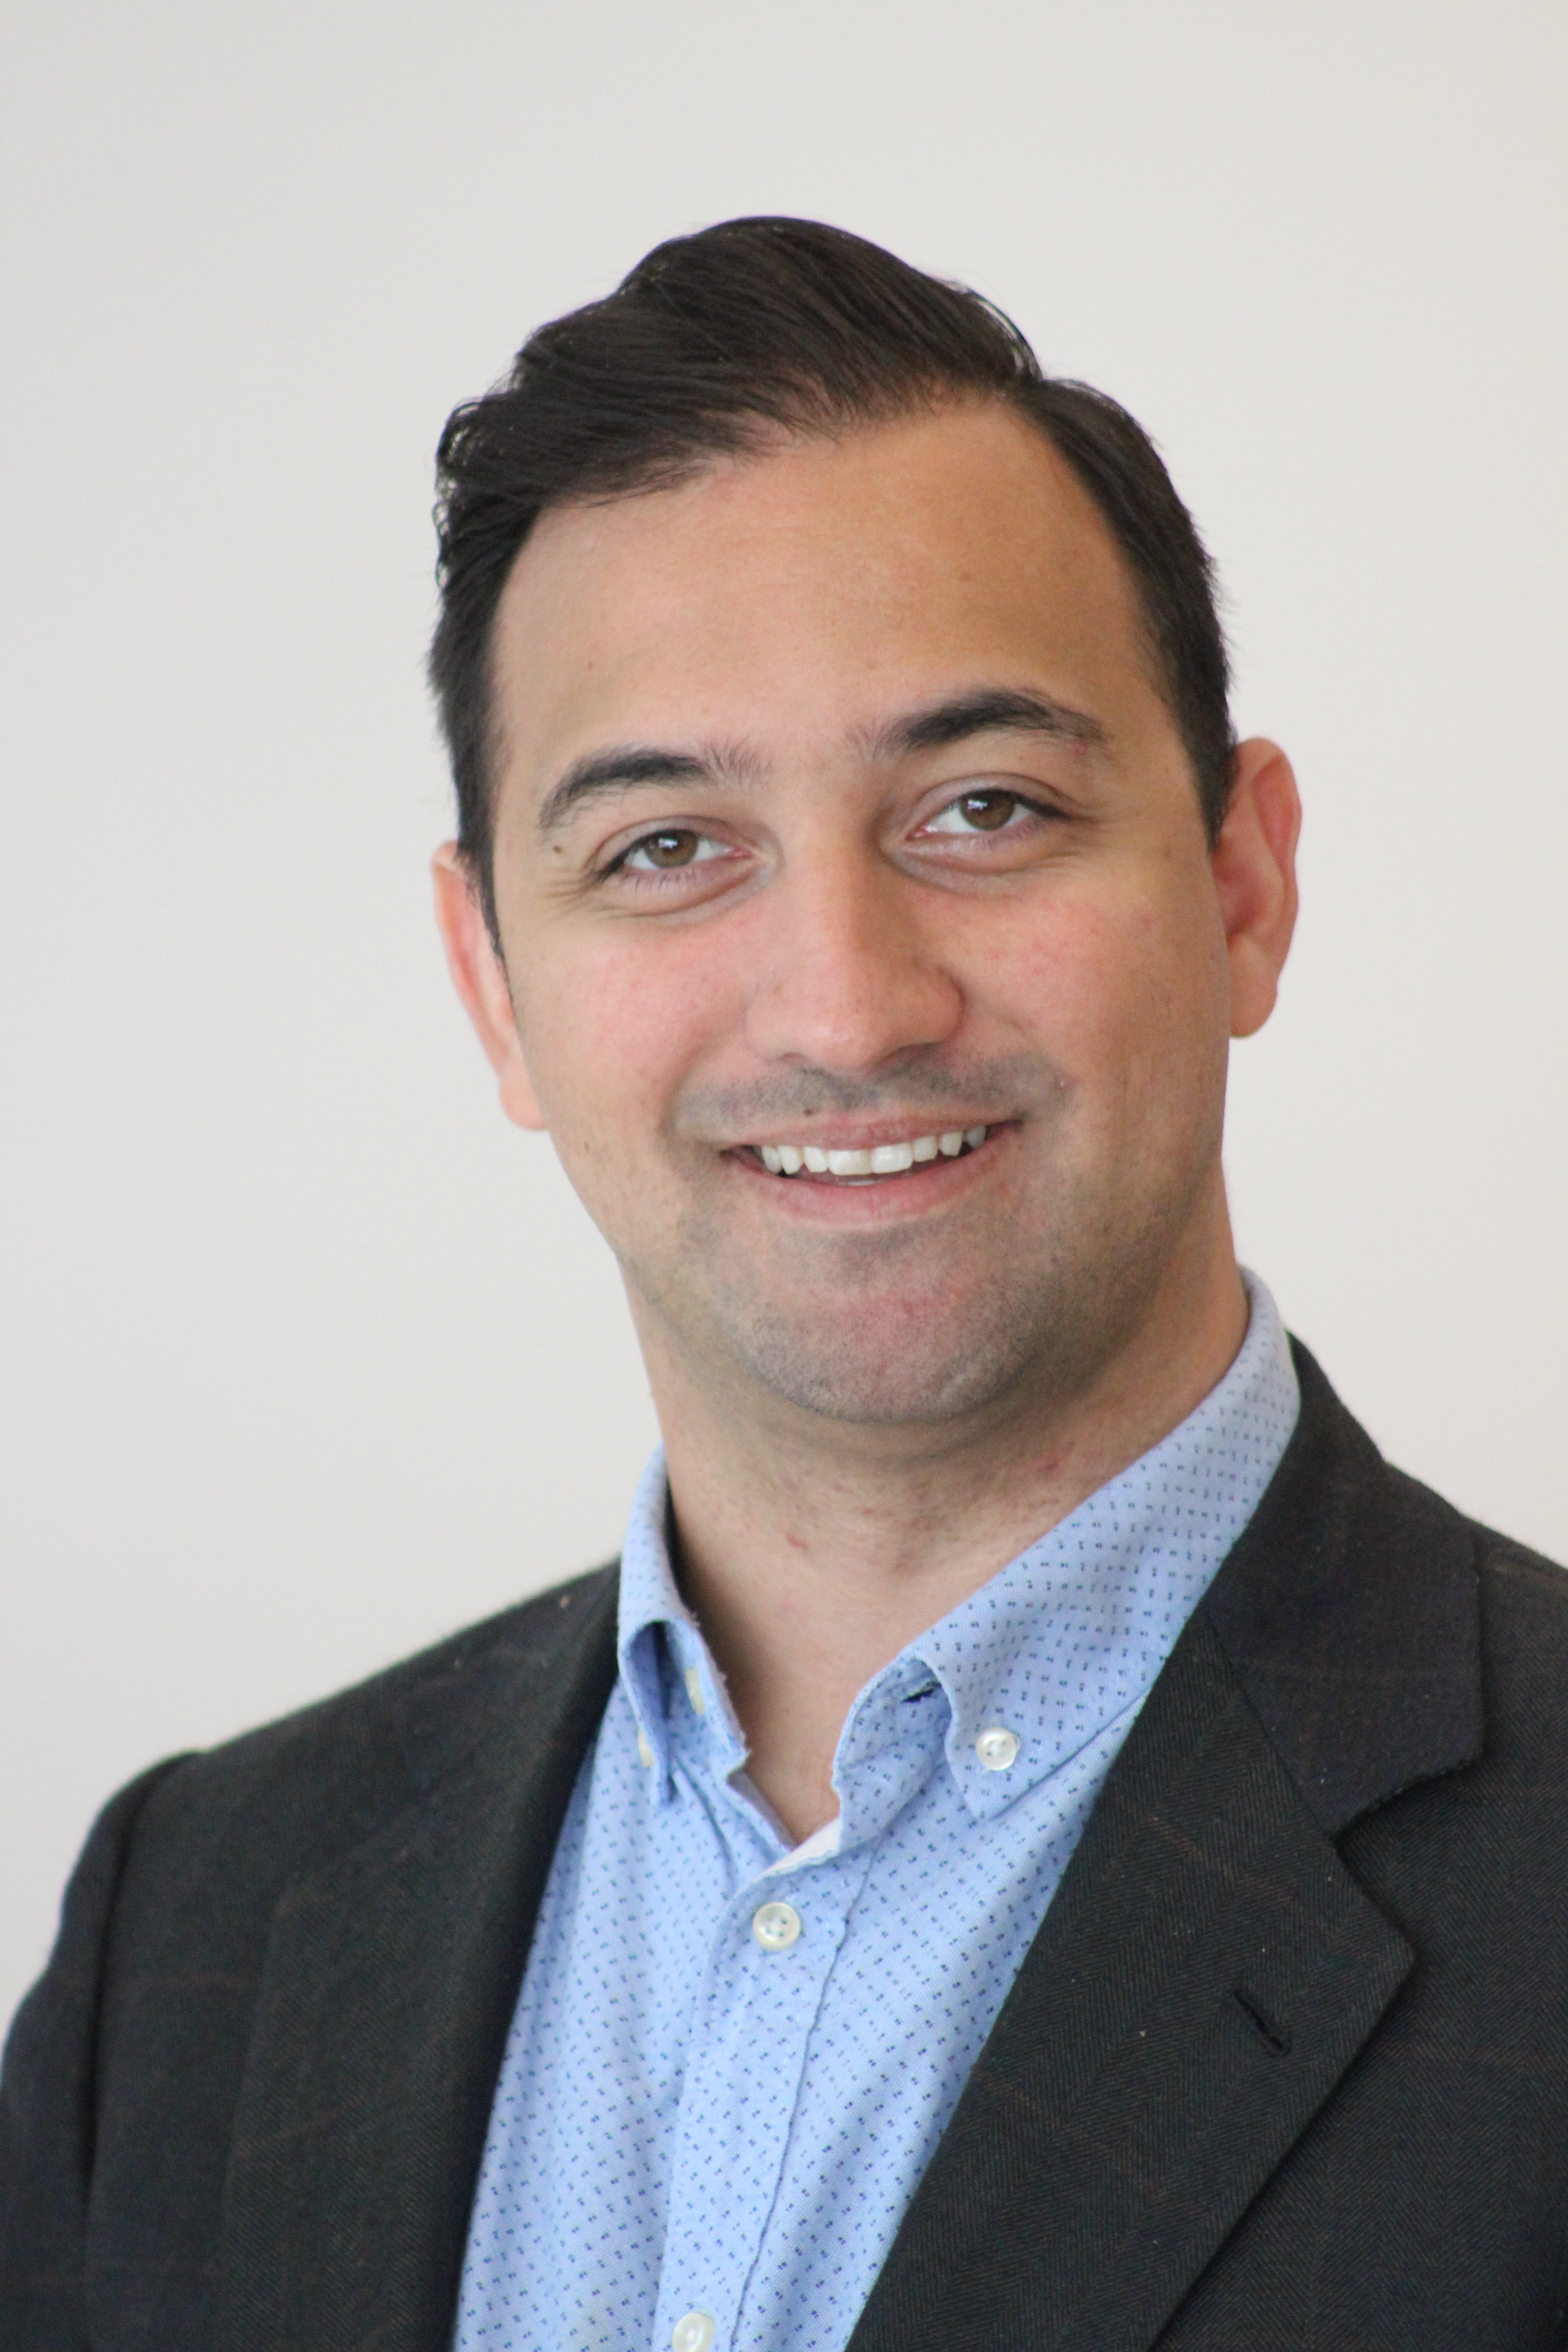 Giancarlo Panetta - Financial Services Manager